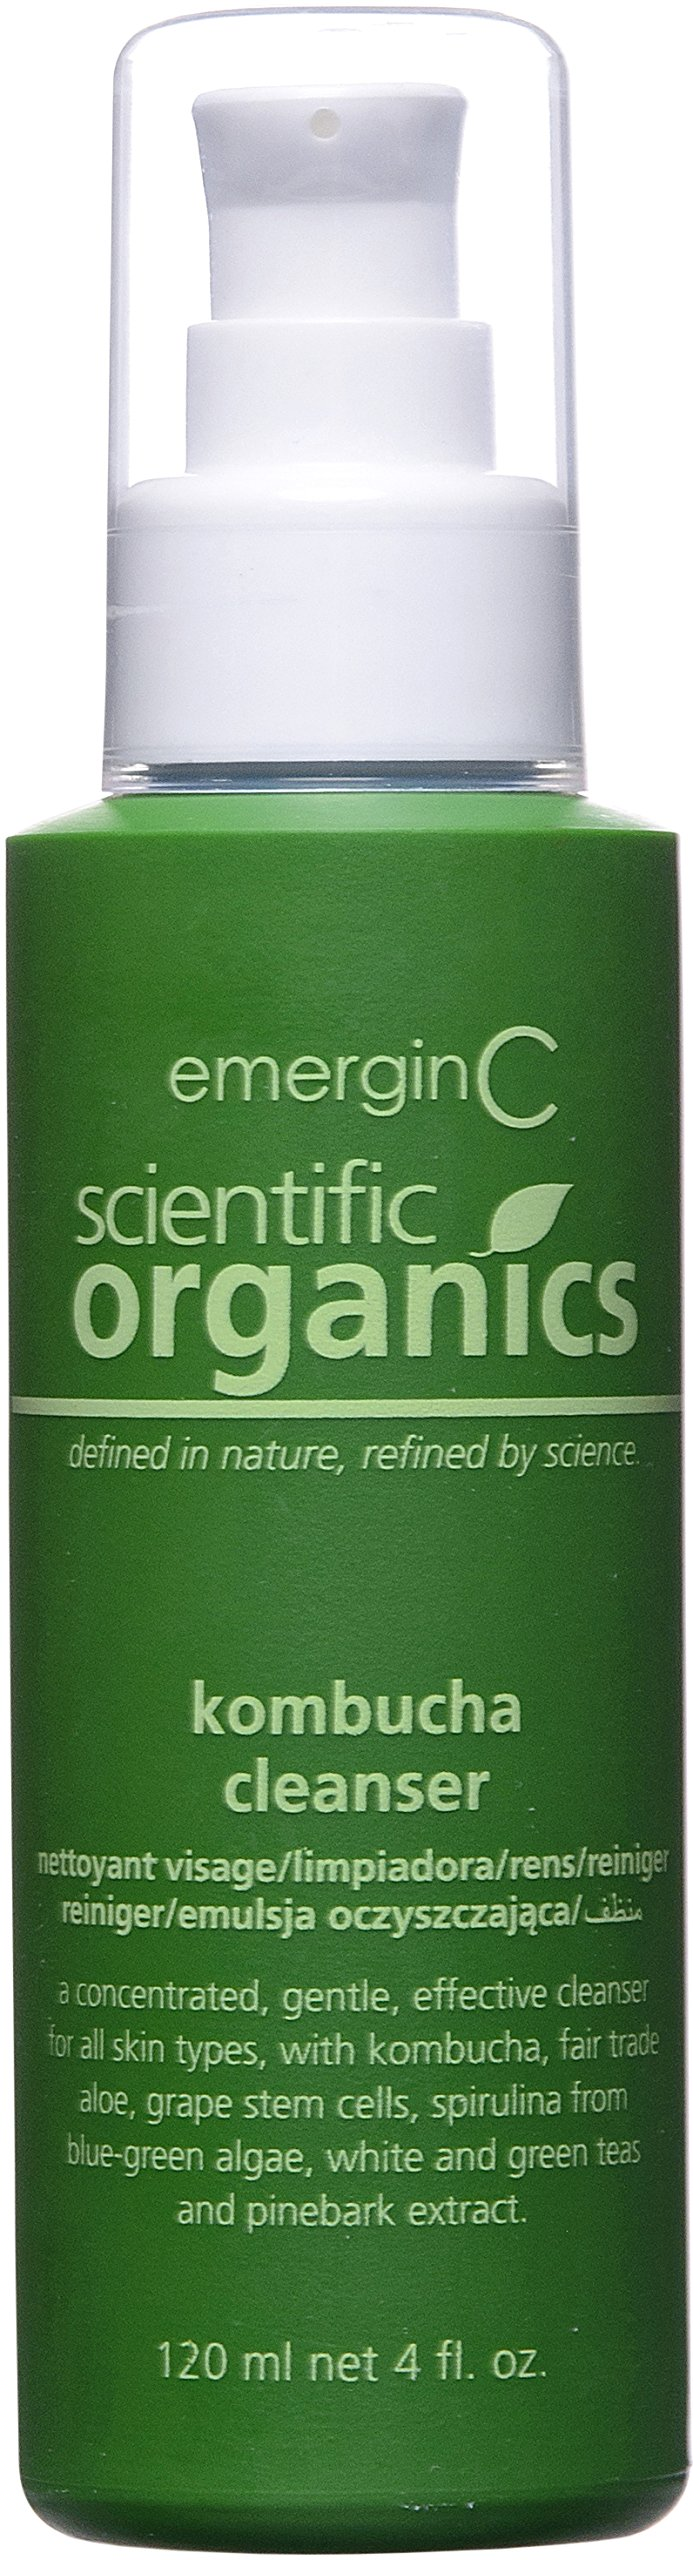 emerginC Scientific Organics - Kombucha Cleanser, 120ml / 4oz